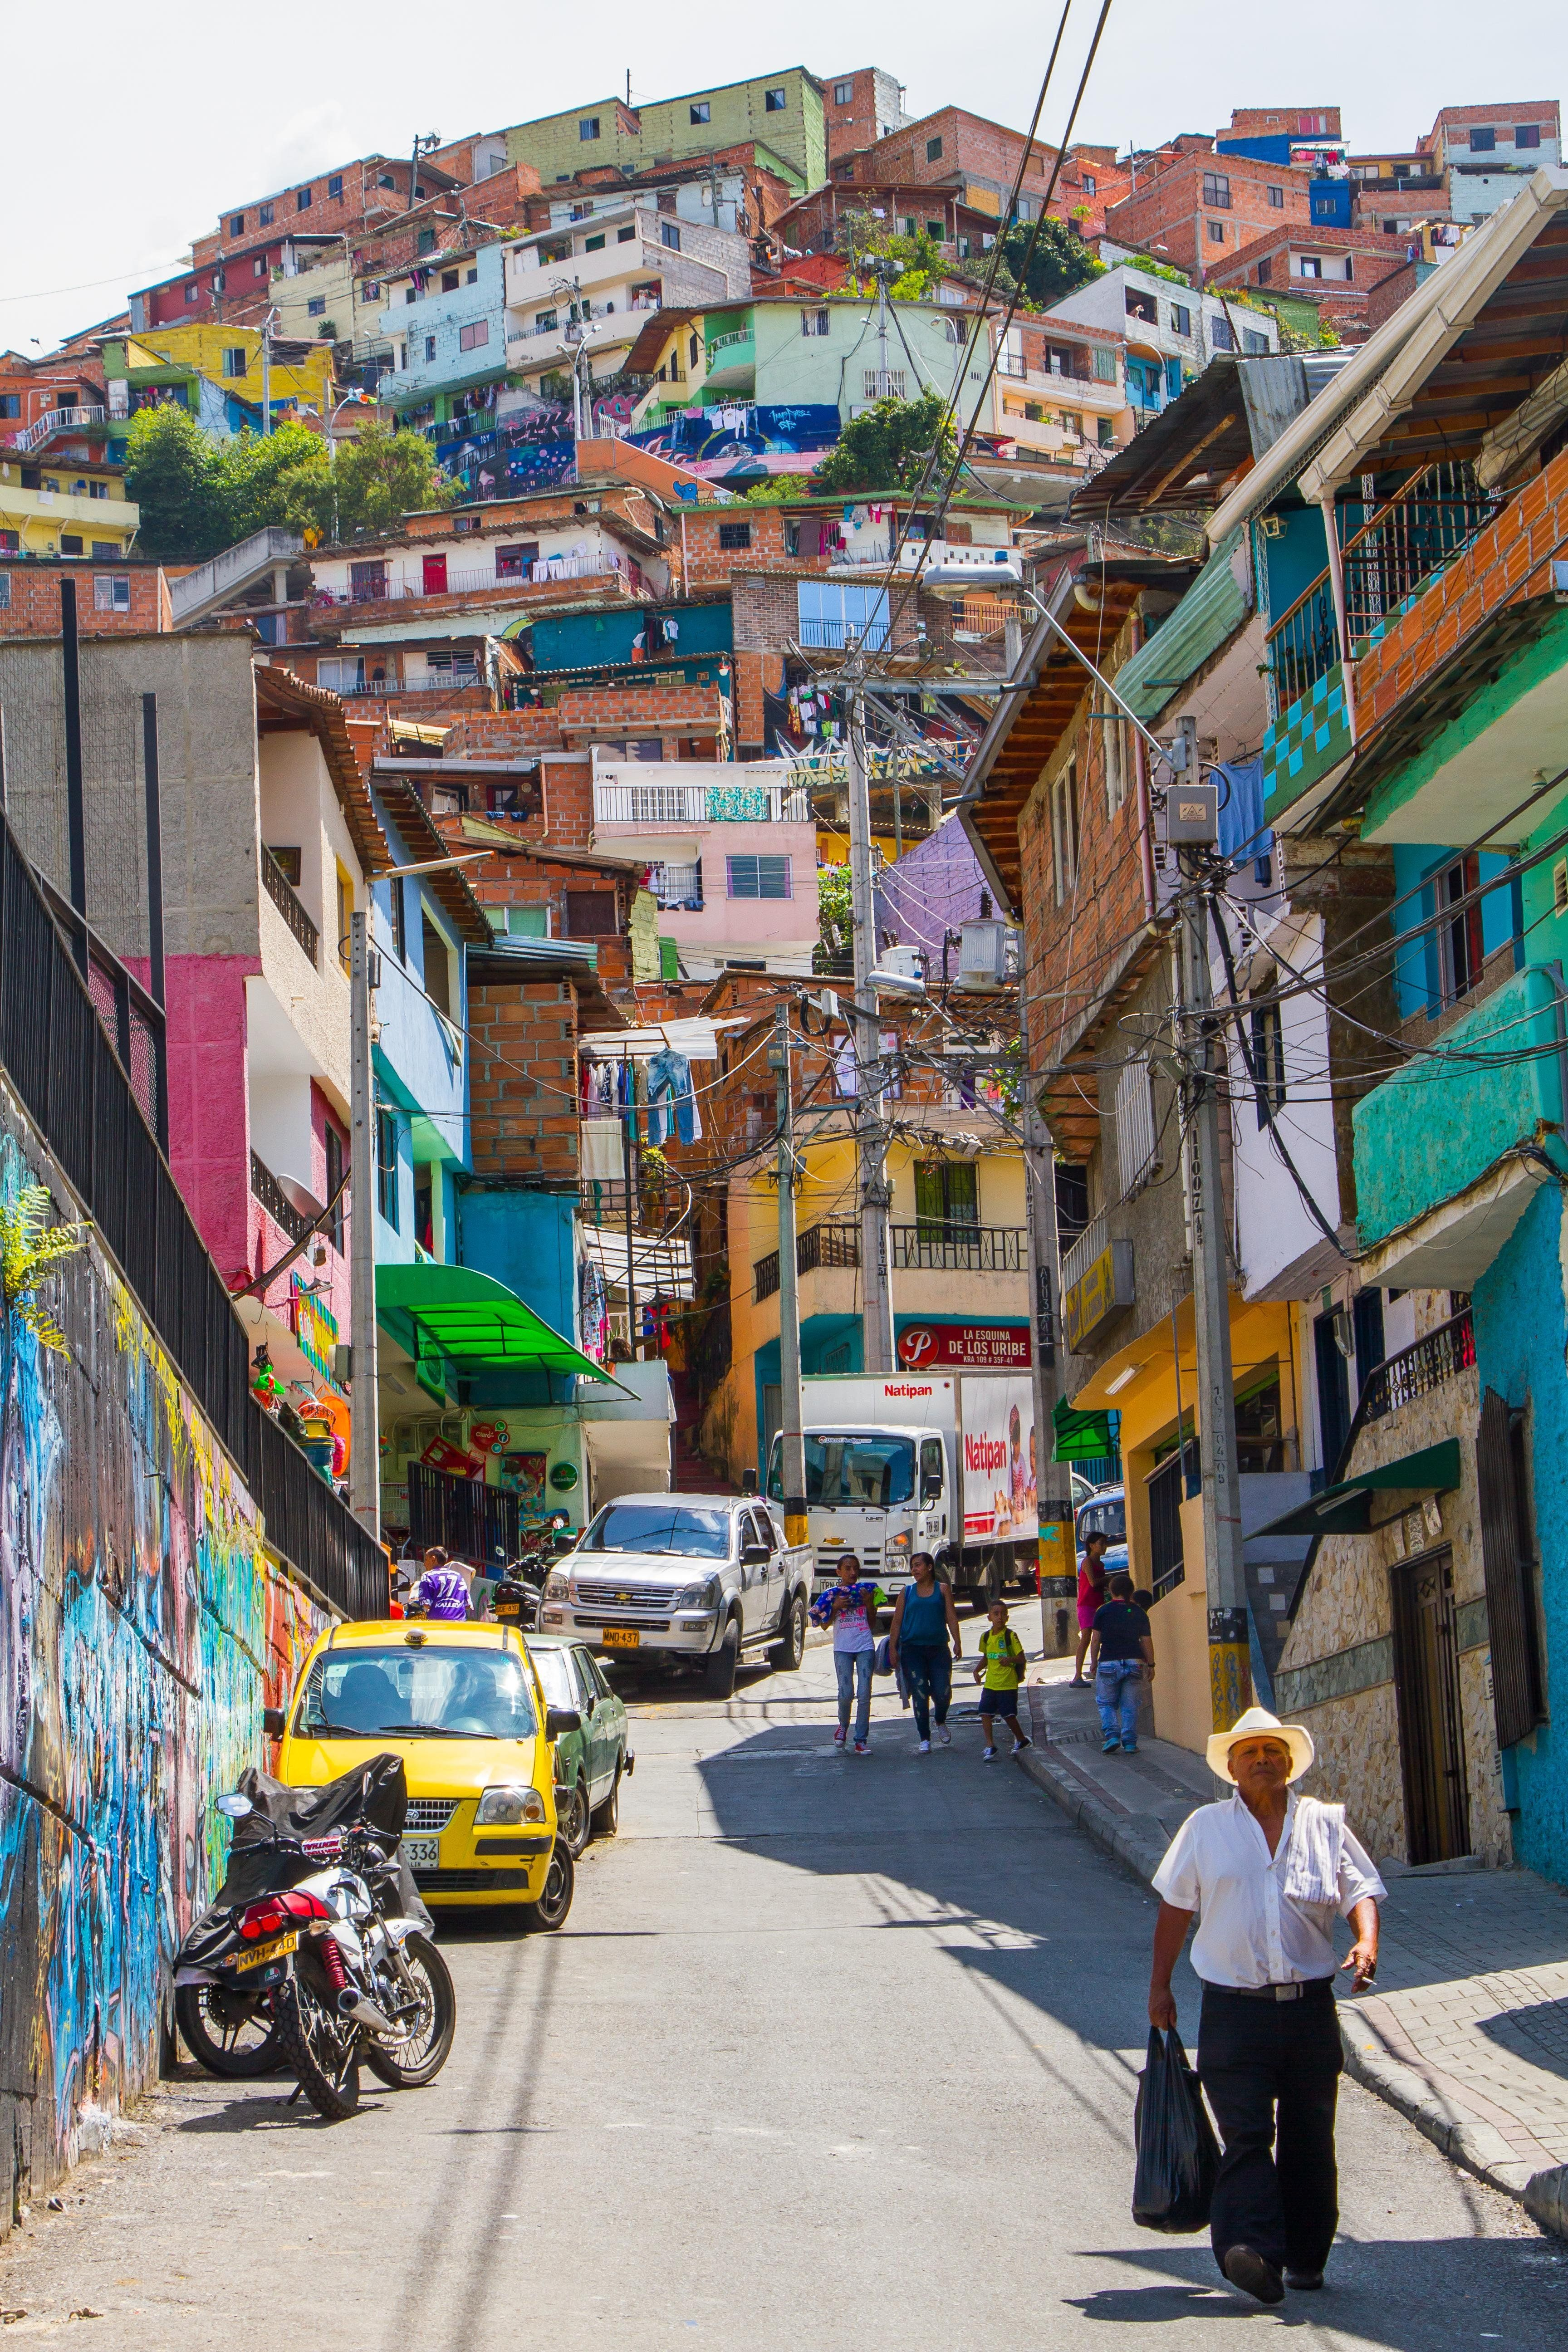 Magical View Of Medellin Colombia Best Experience 34565184 Http Ift Tt 2hwyg7p South America Travel Colombia Travel Travel